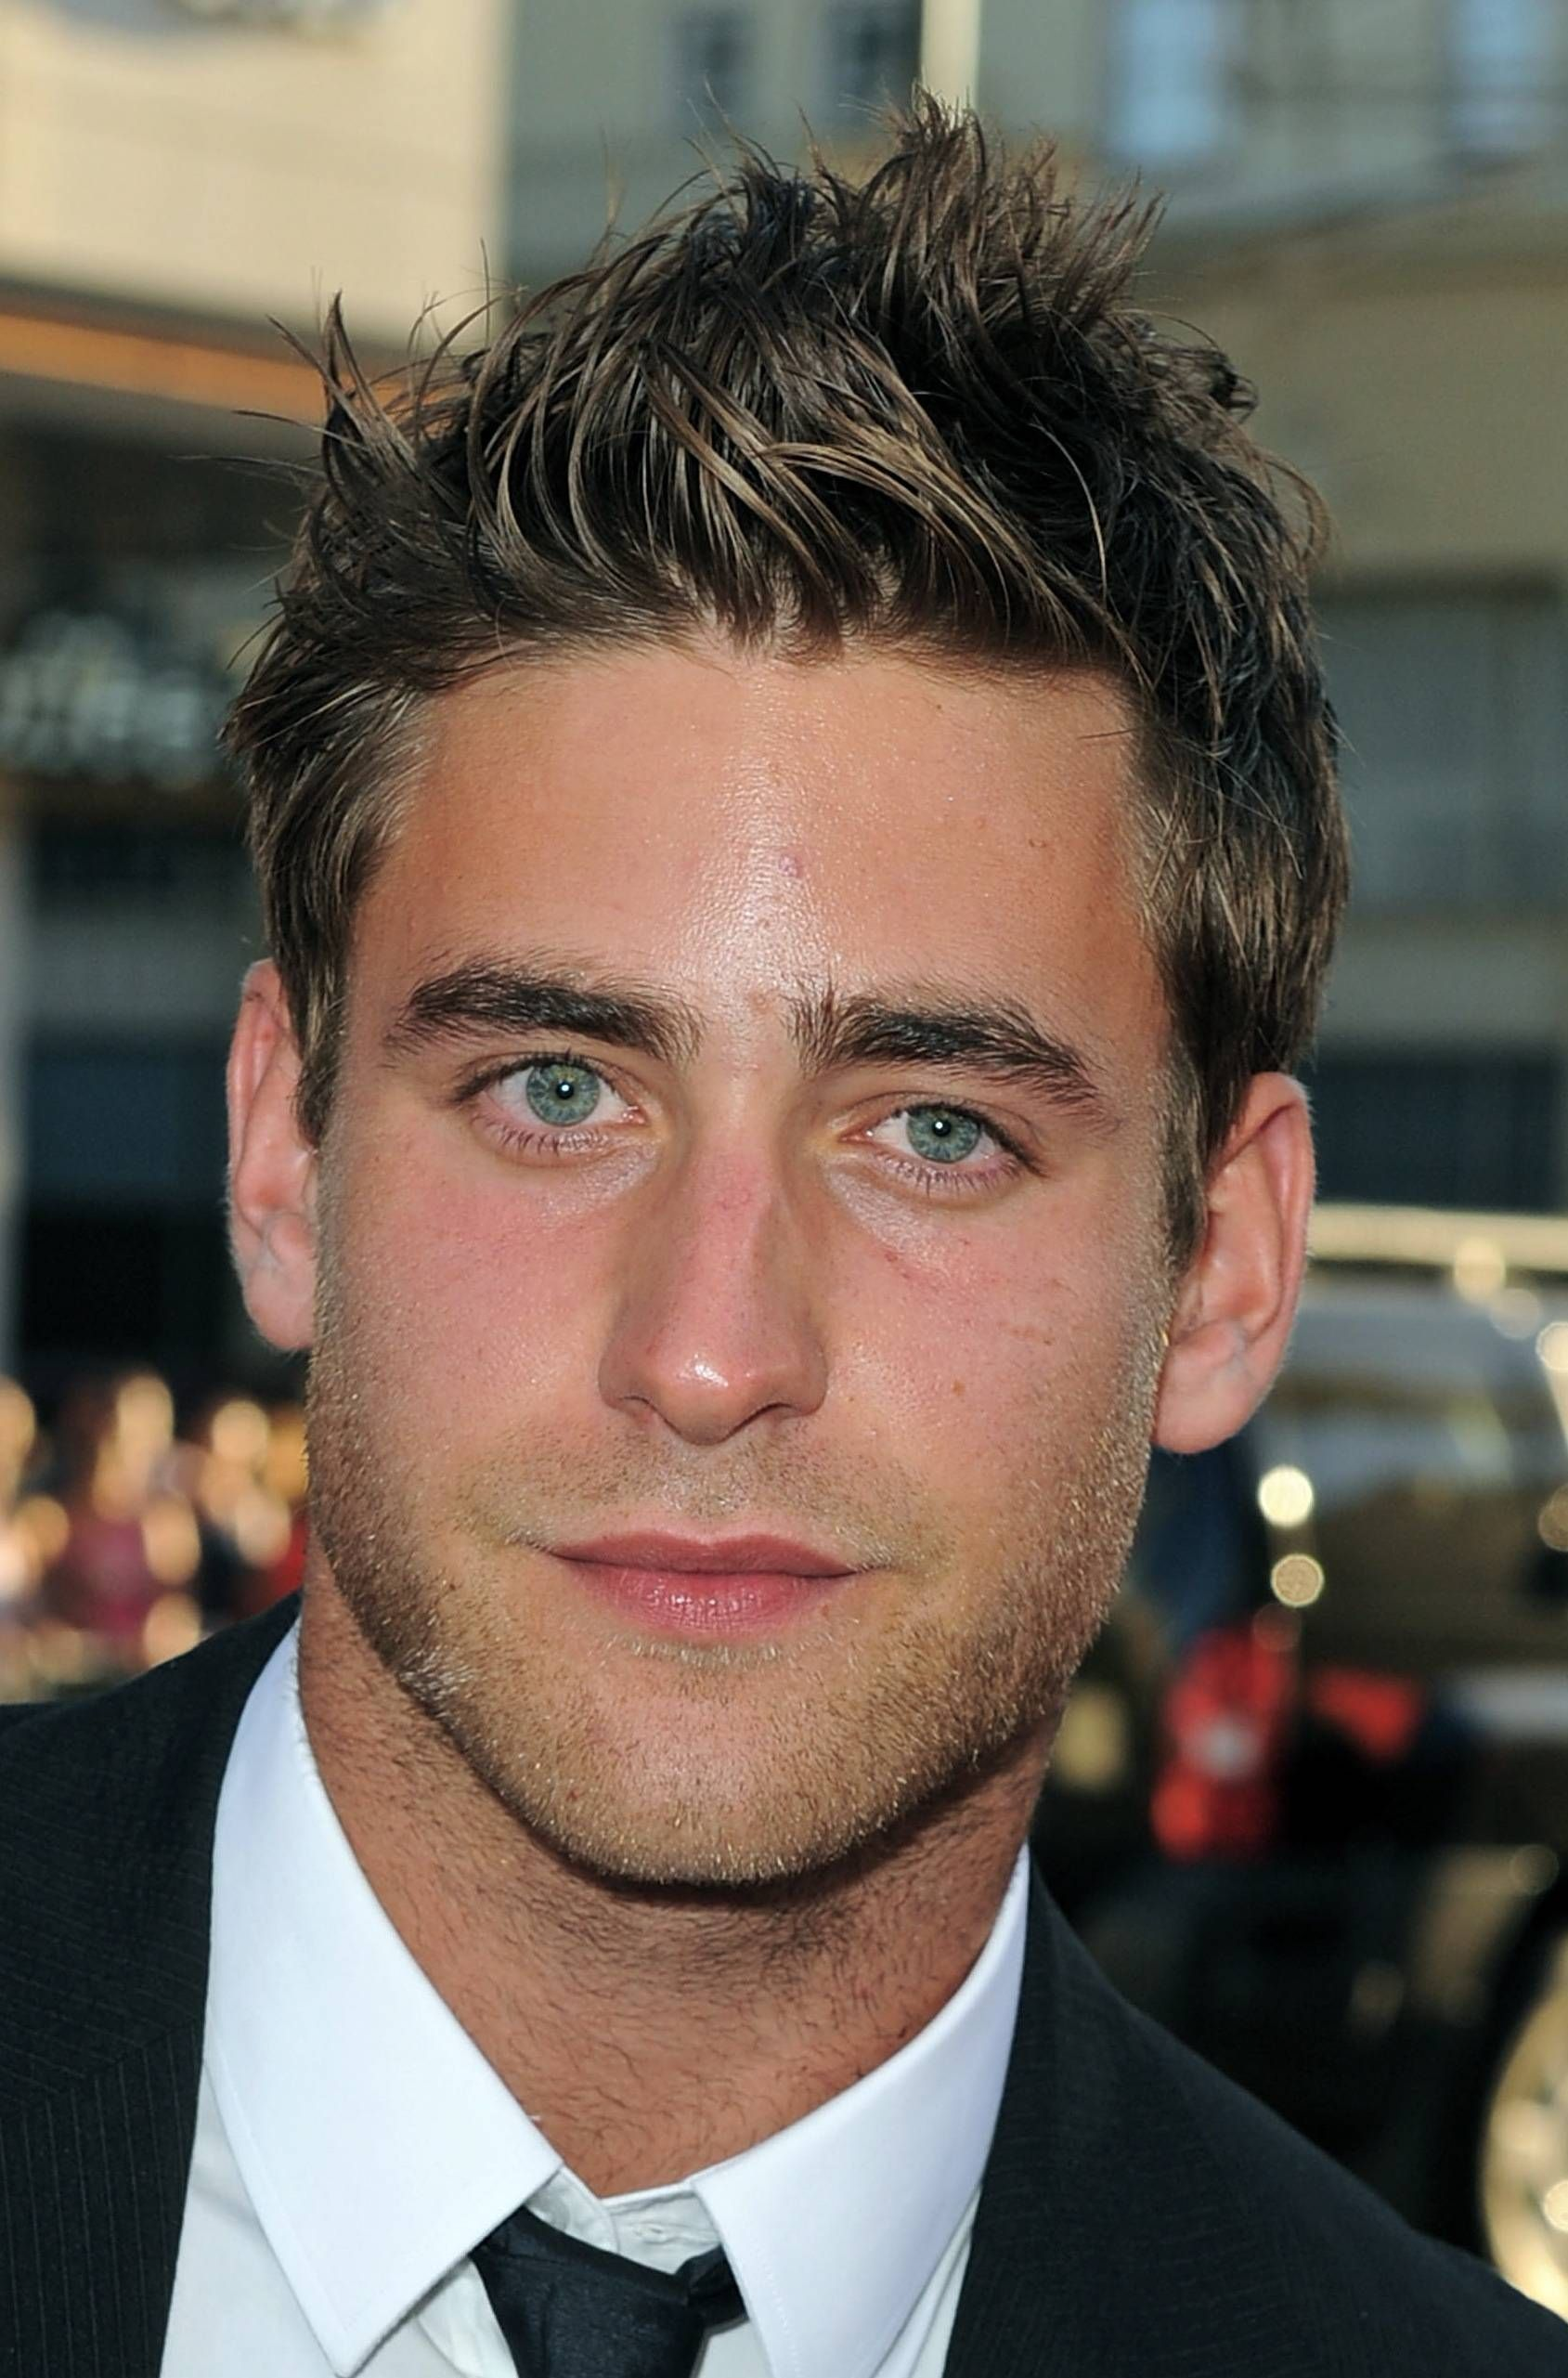 Thick Hairstyles Men Hairstyles For Men With Thick Hair  Oliver Jackson Cohen Wavy Hair